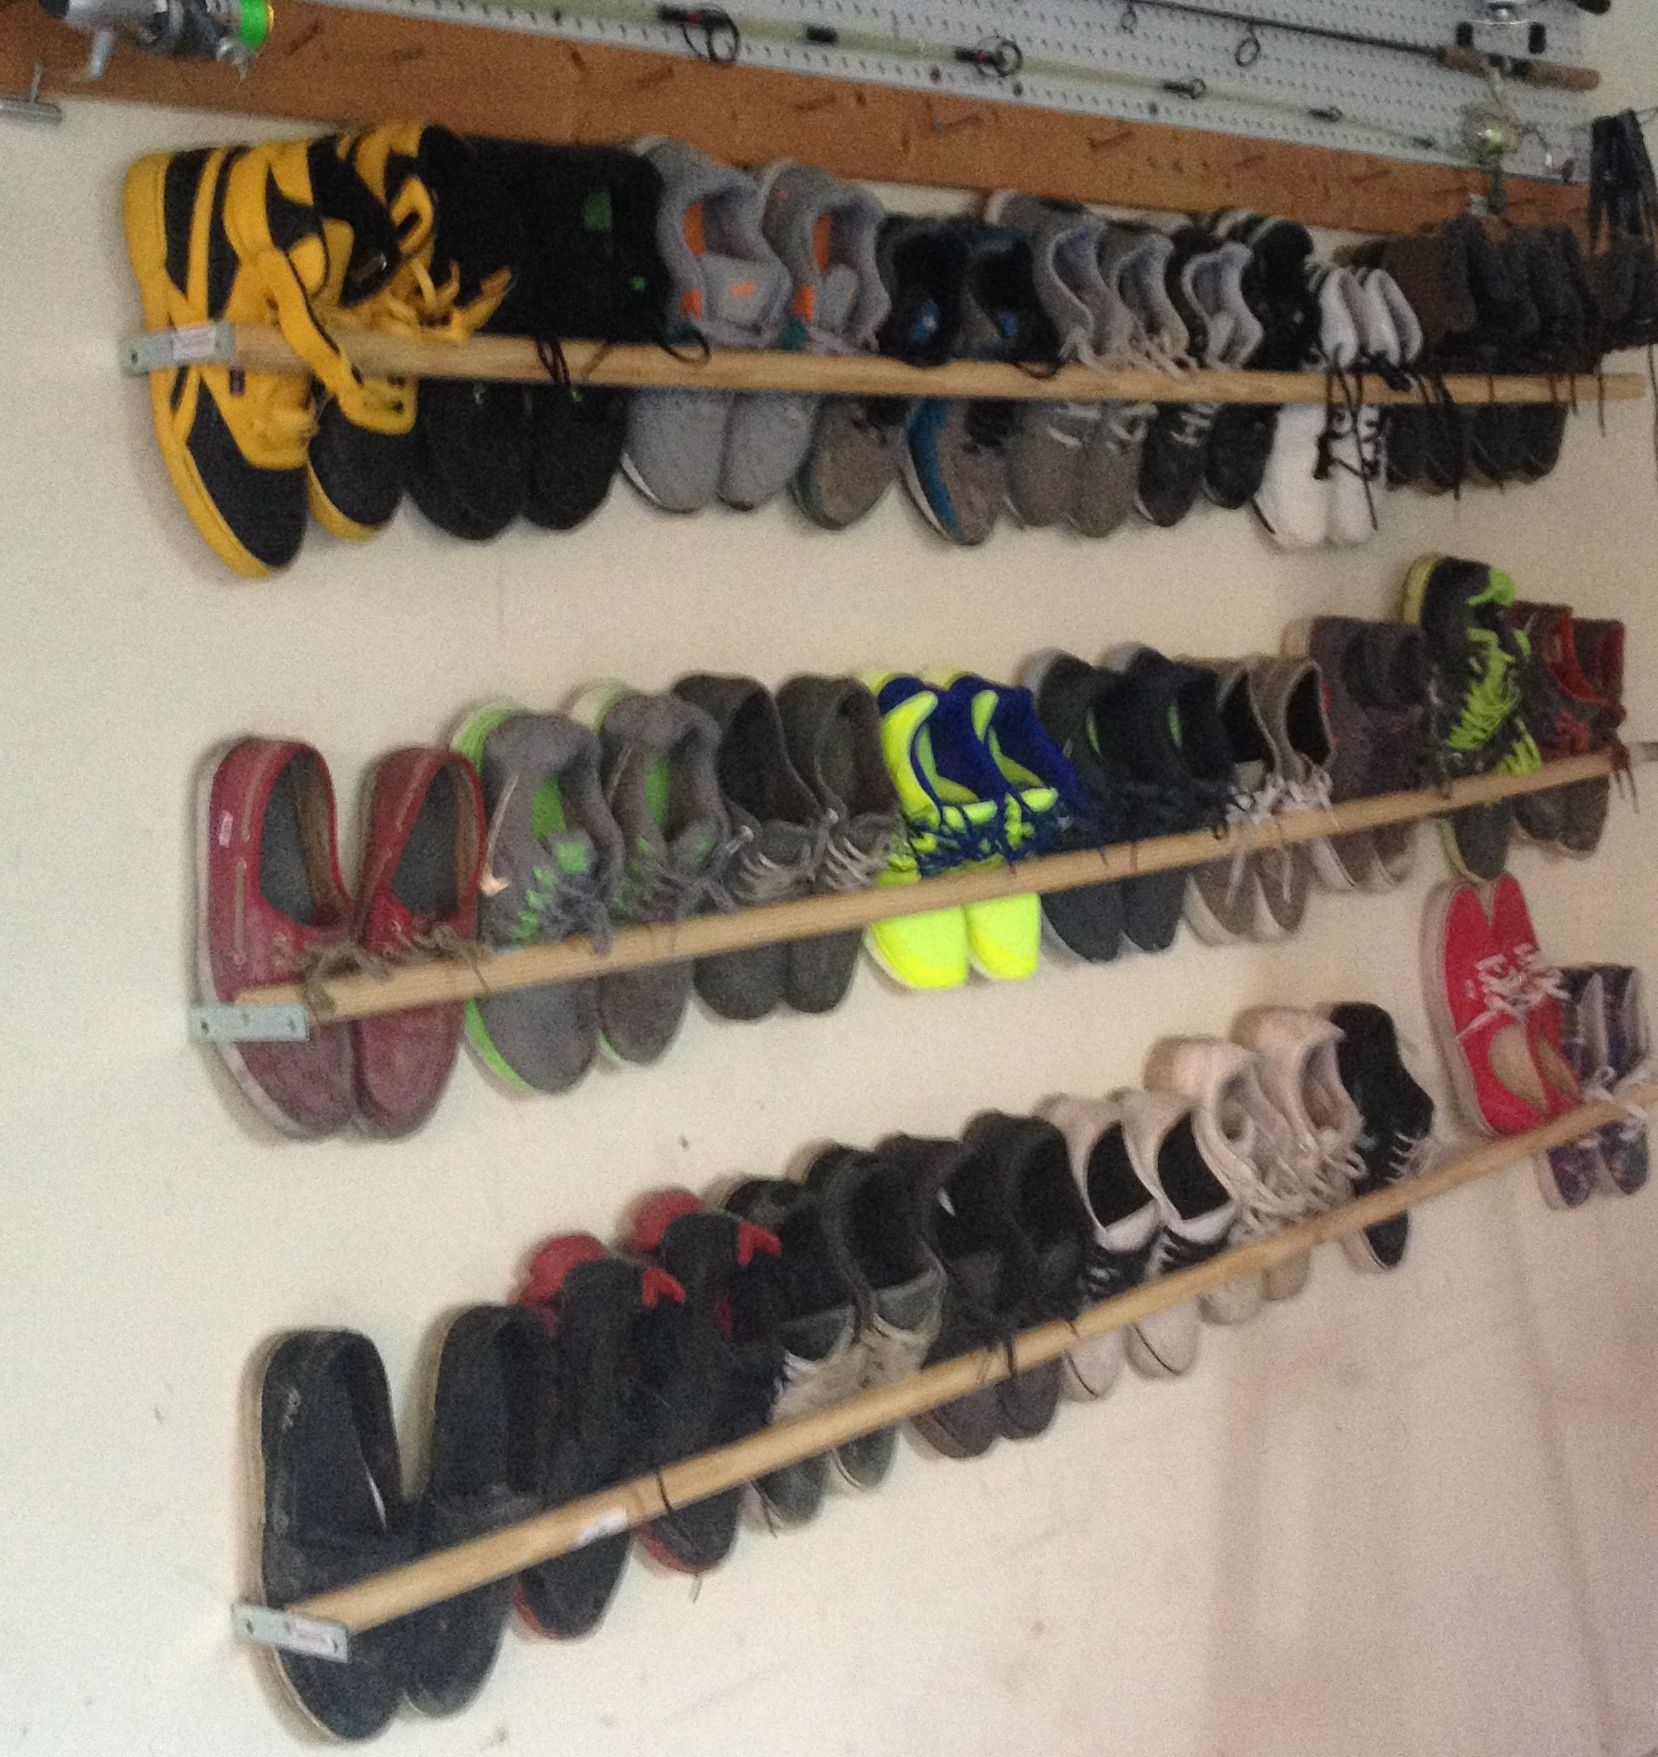 Pin By Dianne Johnson On For The Home Diy Shoe Storage Diy Shoe Rack Shoe Storage Small Space